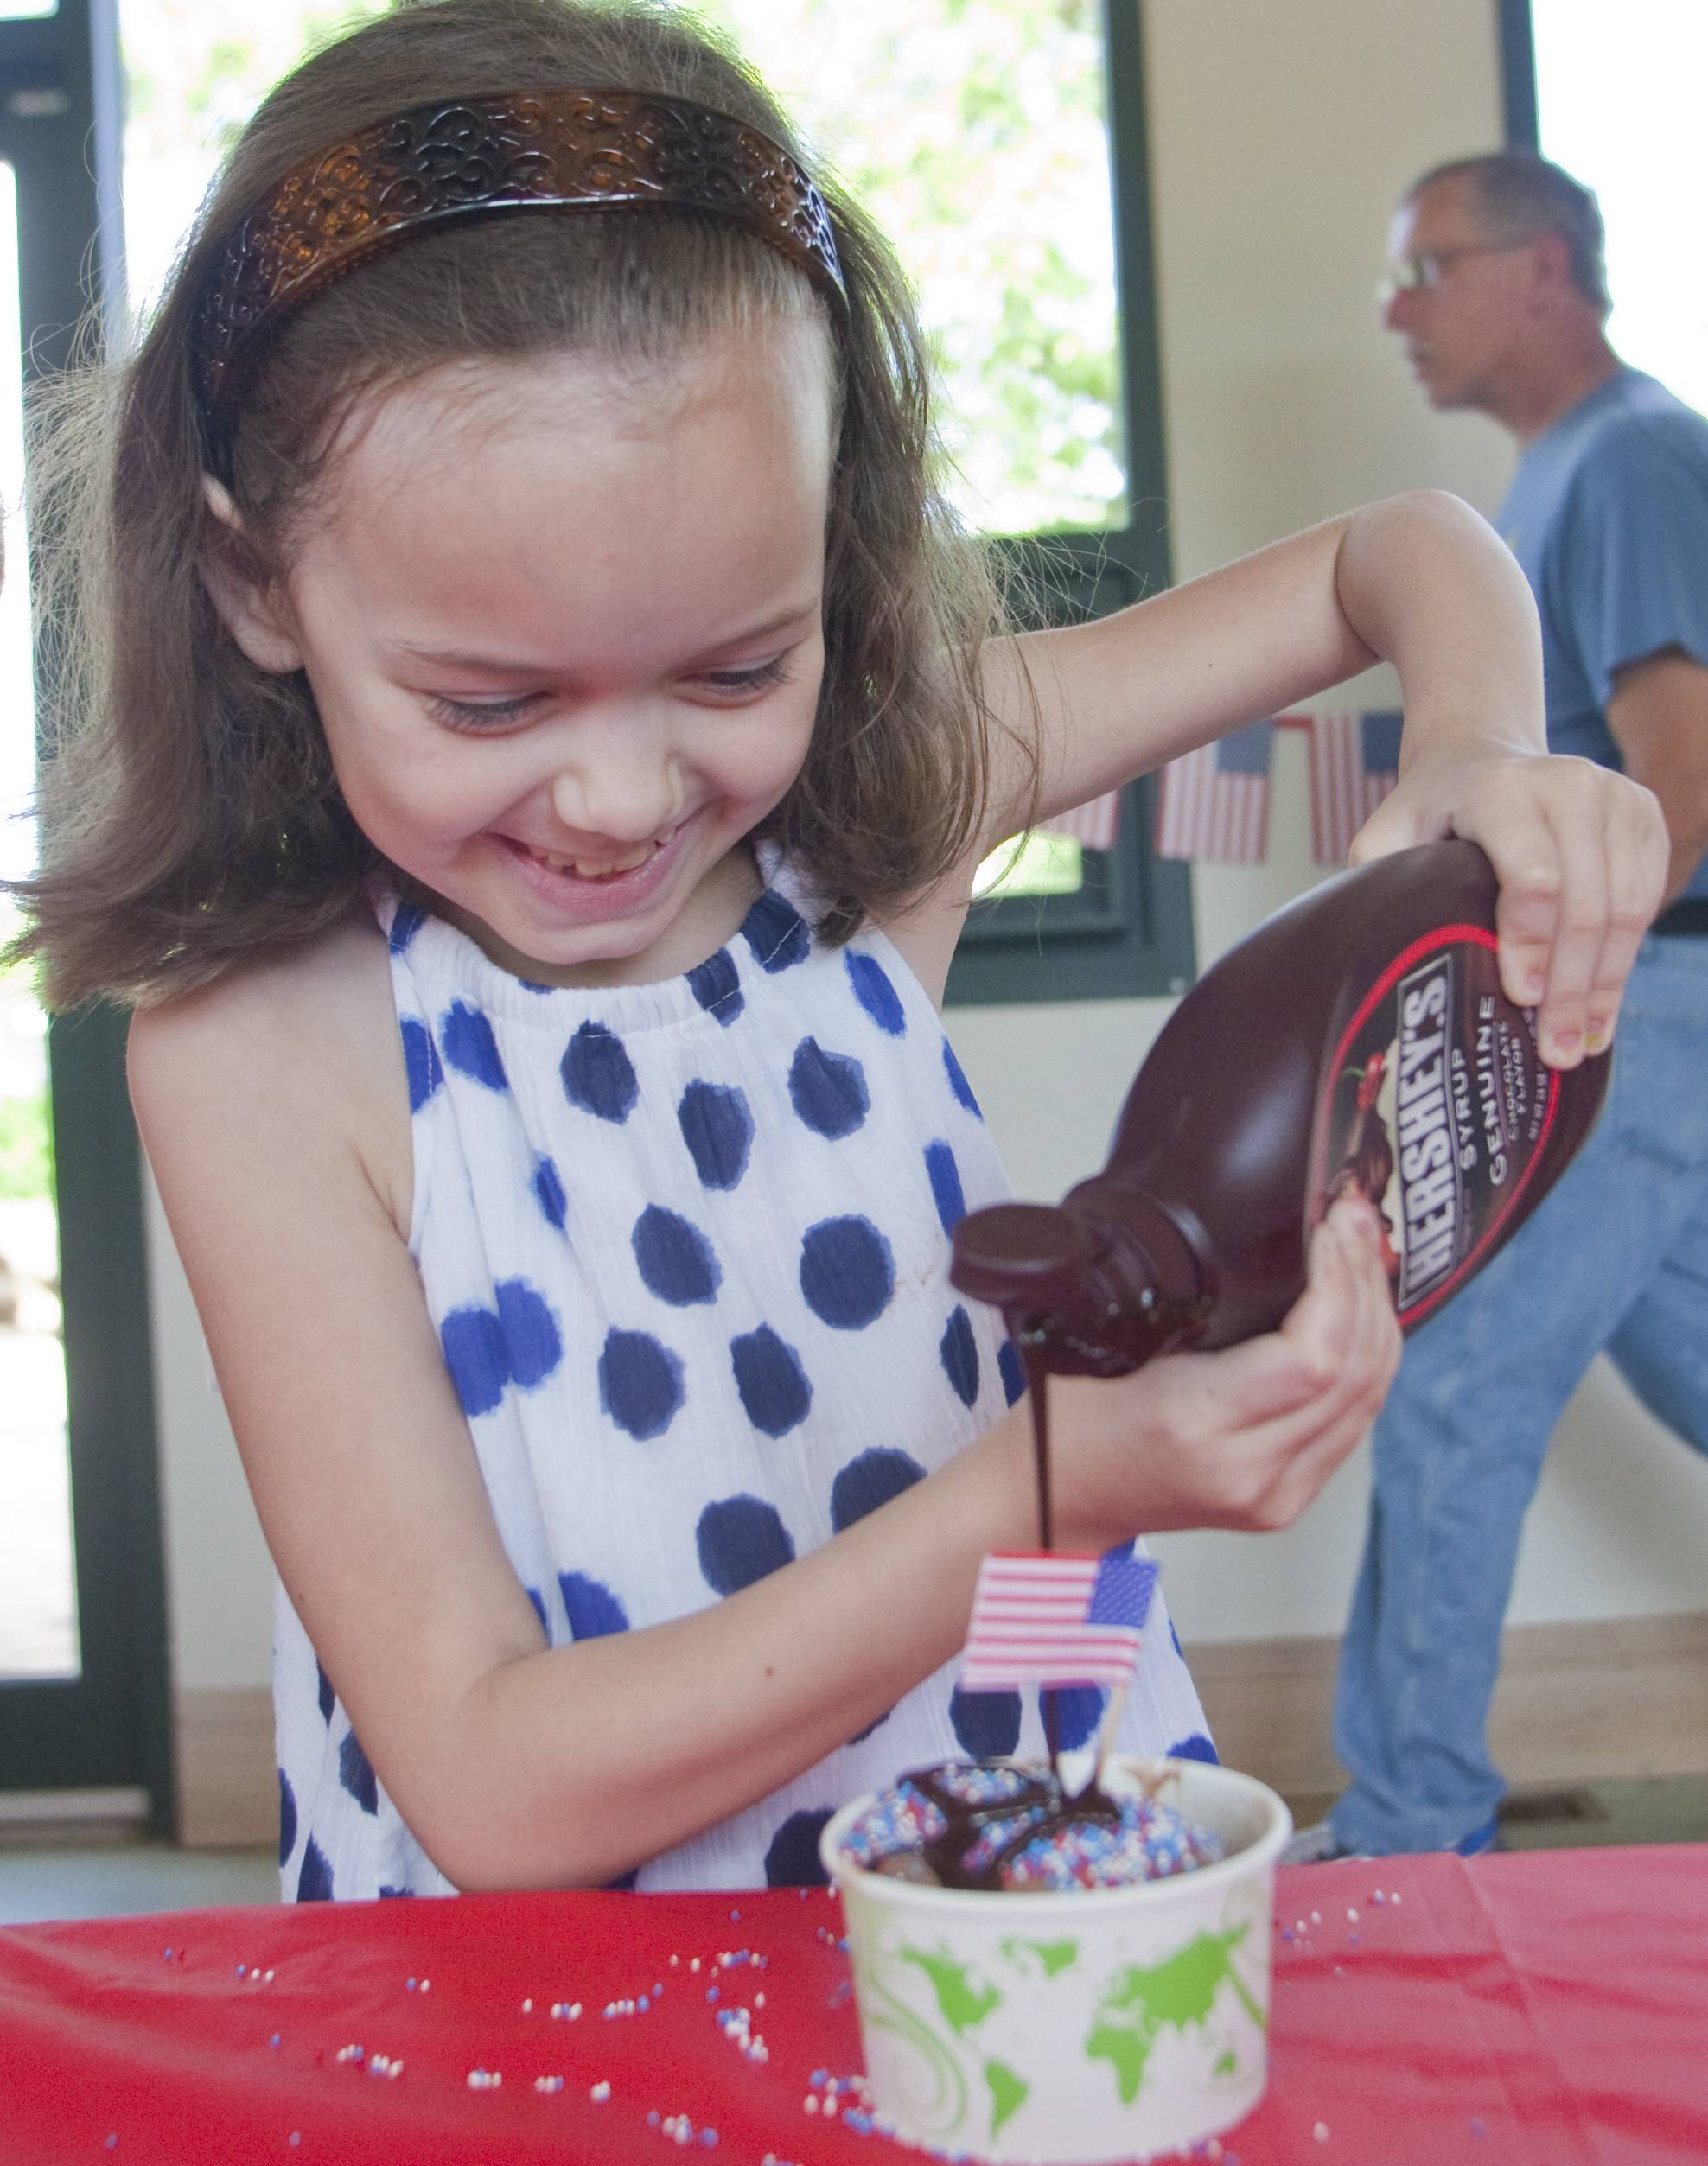 Batavia ice cream social to support Flag Day memorial, fireworks